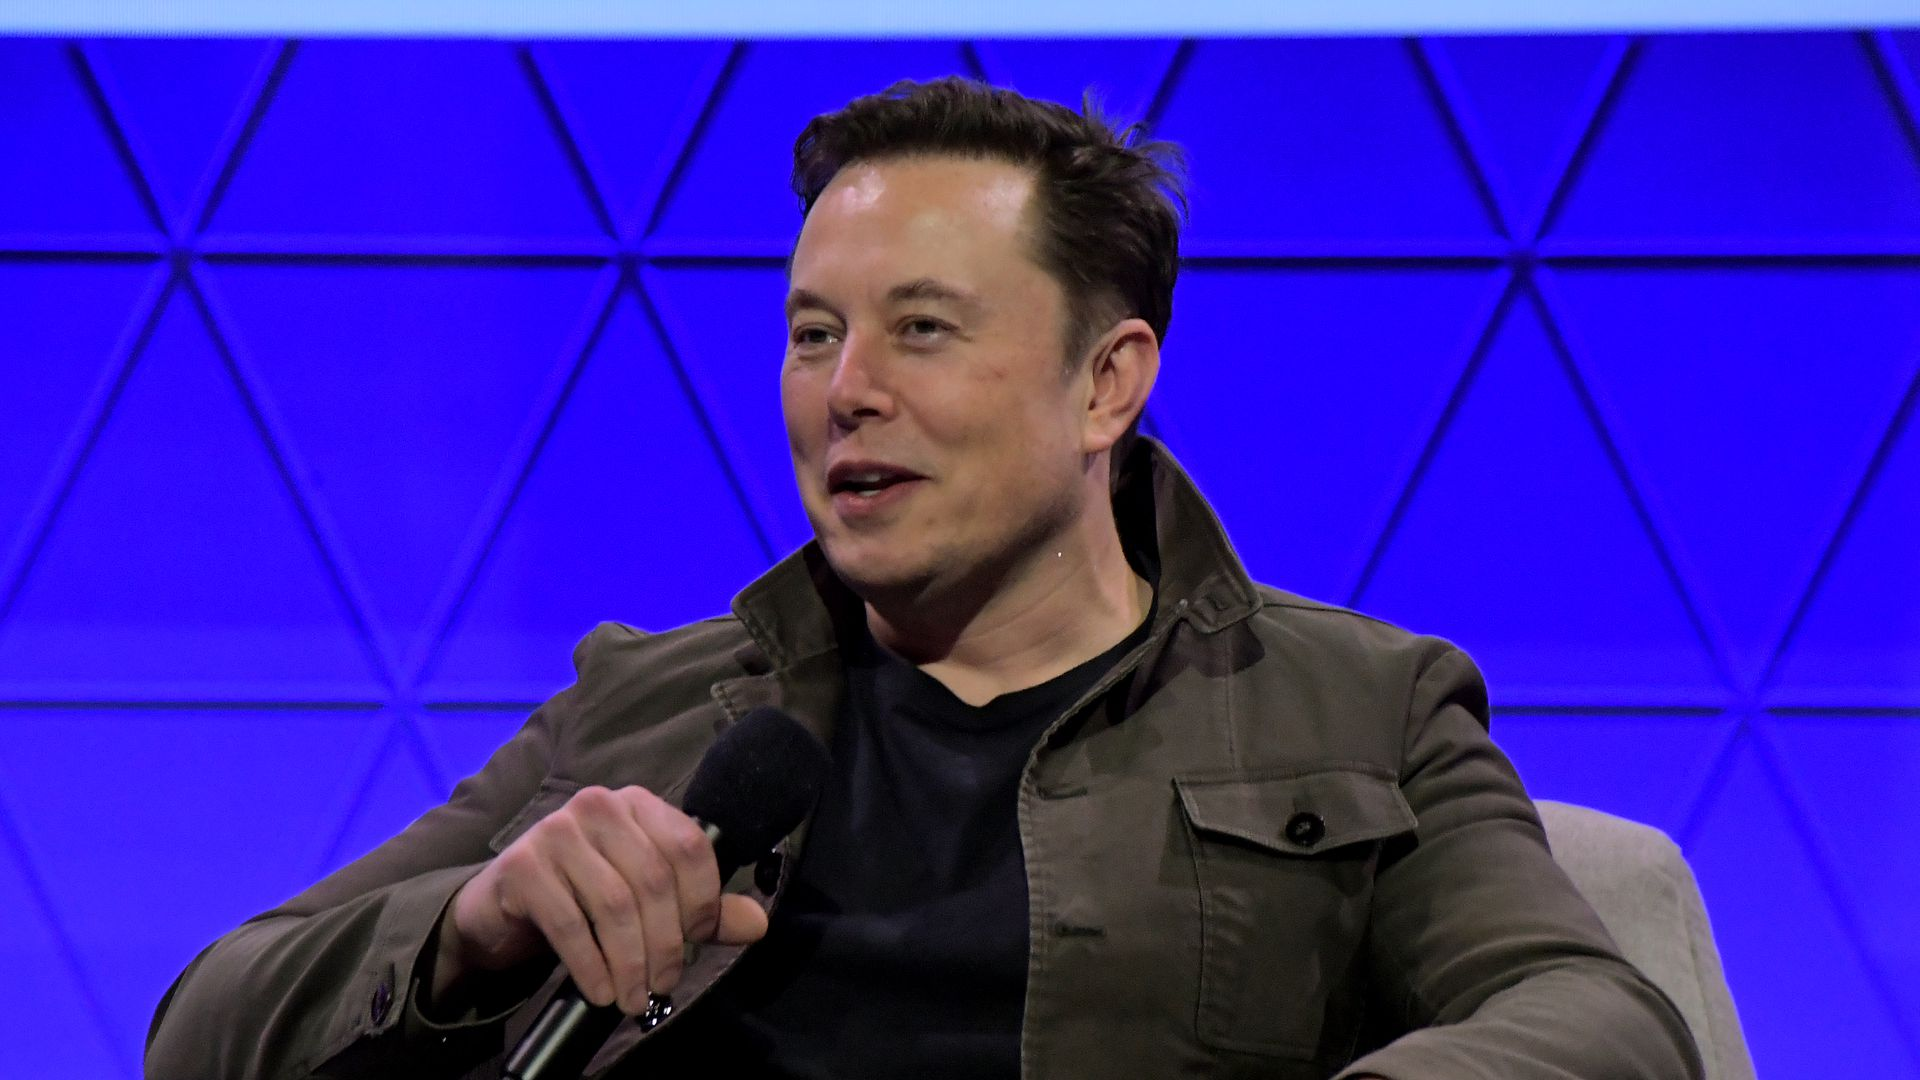 Elon Musk's Neuralink hopes to hook human brains to computers by 2020